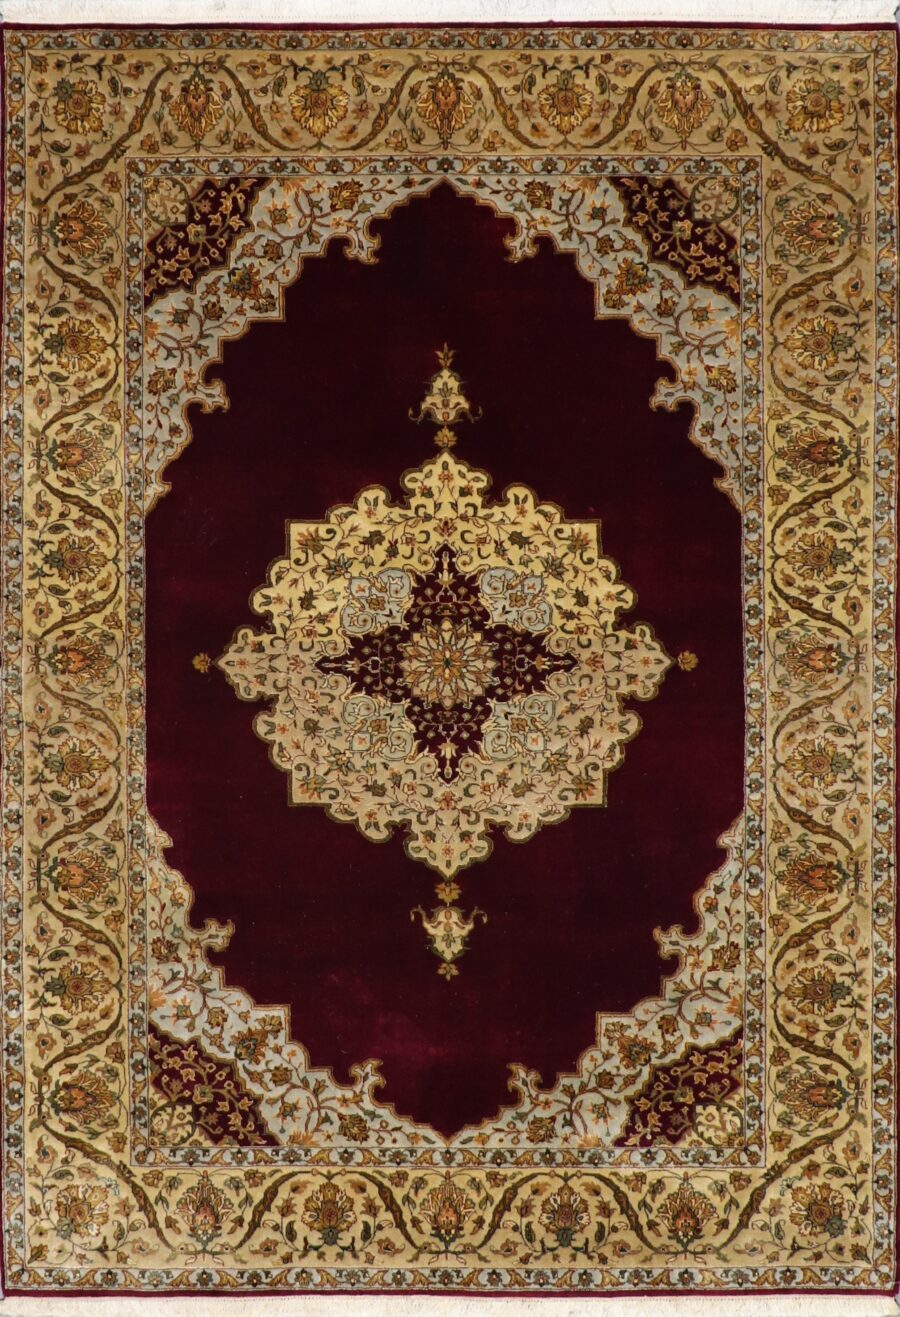 """5'6""""x8'1"""" Classic Traditional Tabriz Burgundy Wool Hand-Knotted Rug - Direct Rug Import   Rugs in Chicago, Indiana,South Bend,Granger"""